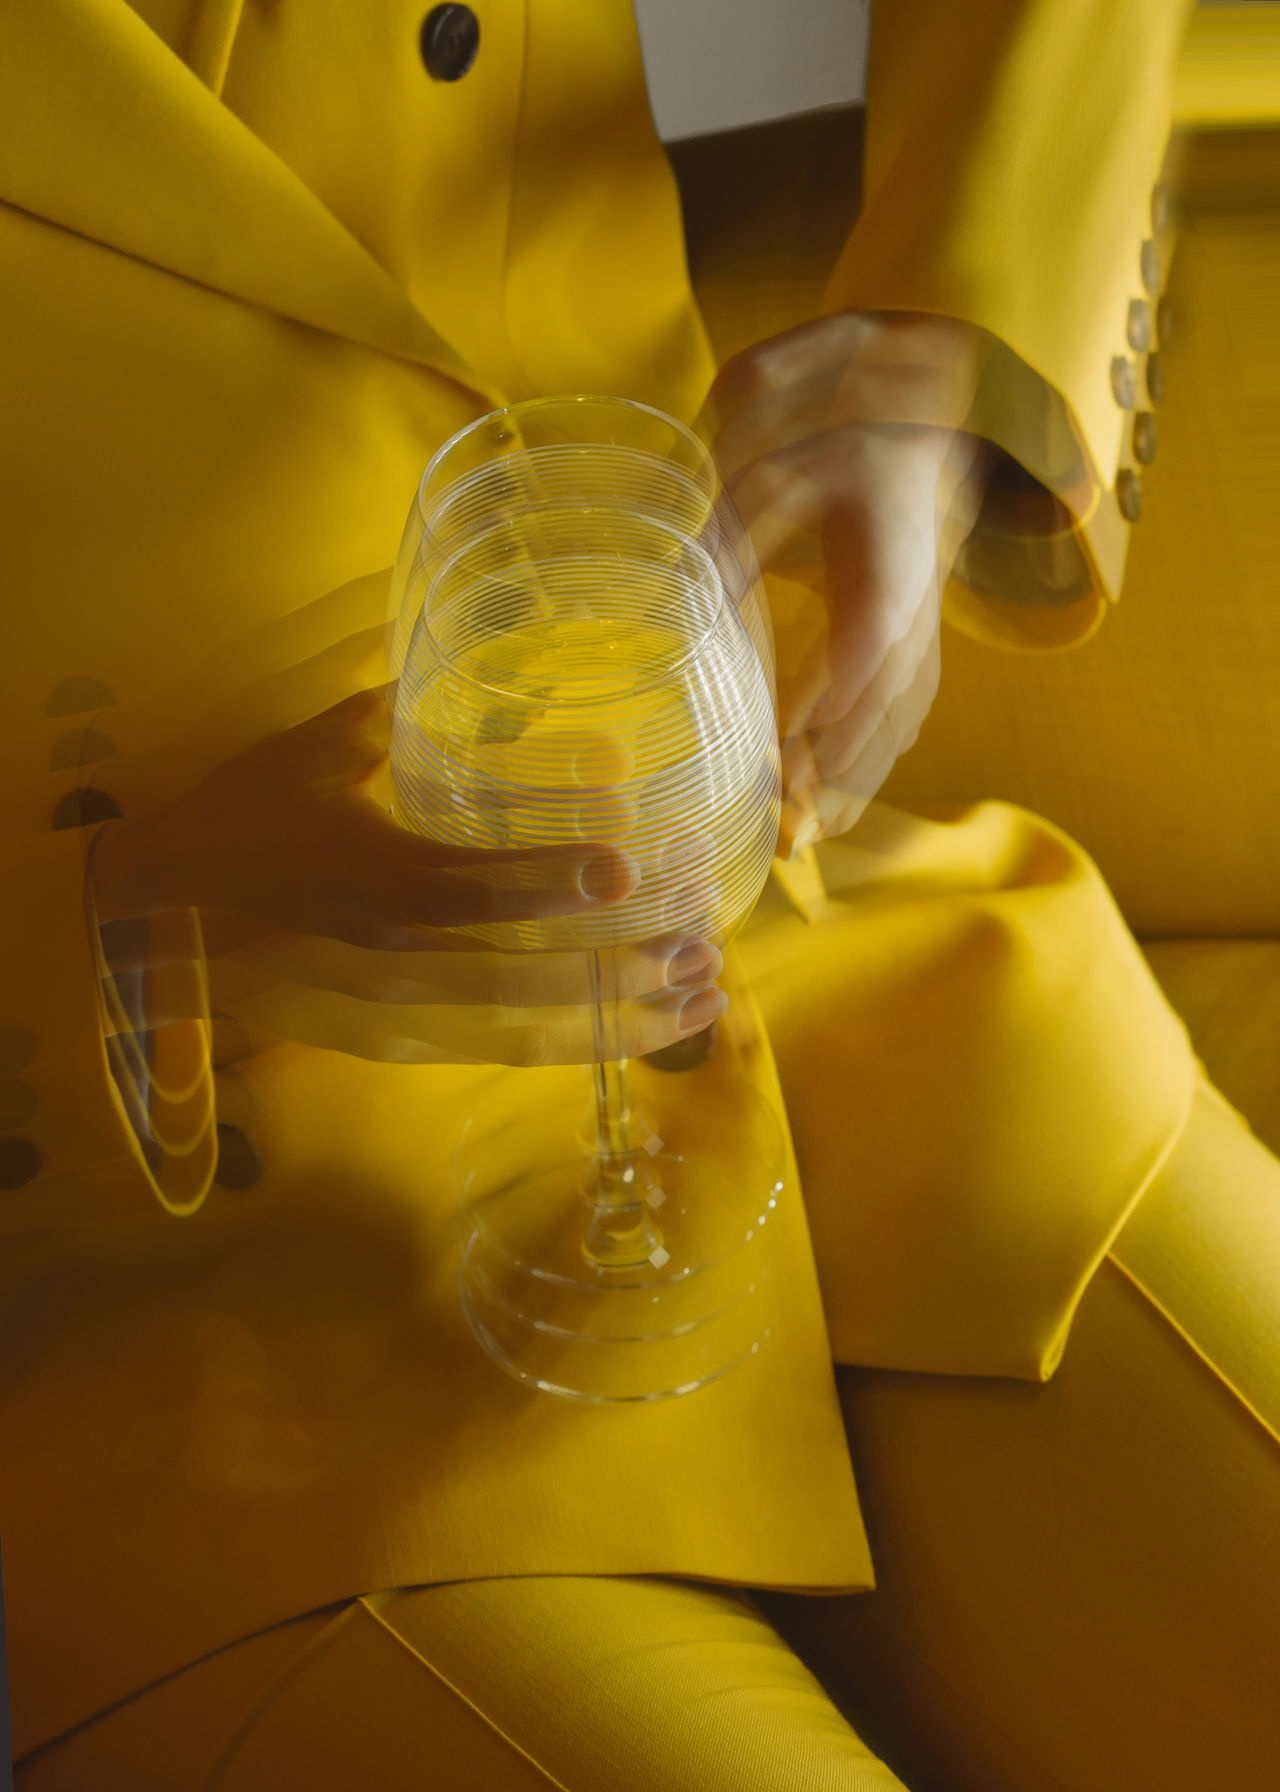 Blurred motion of woman holding wineglass